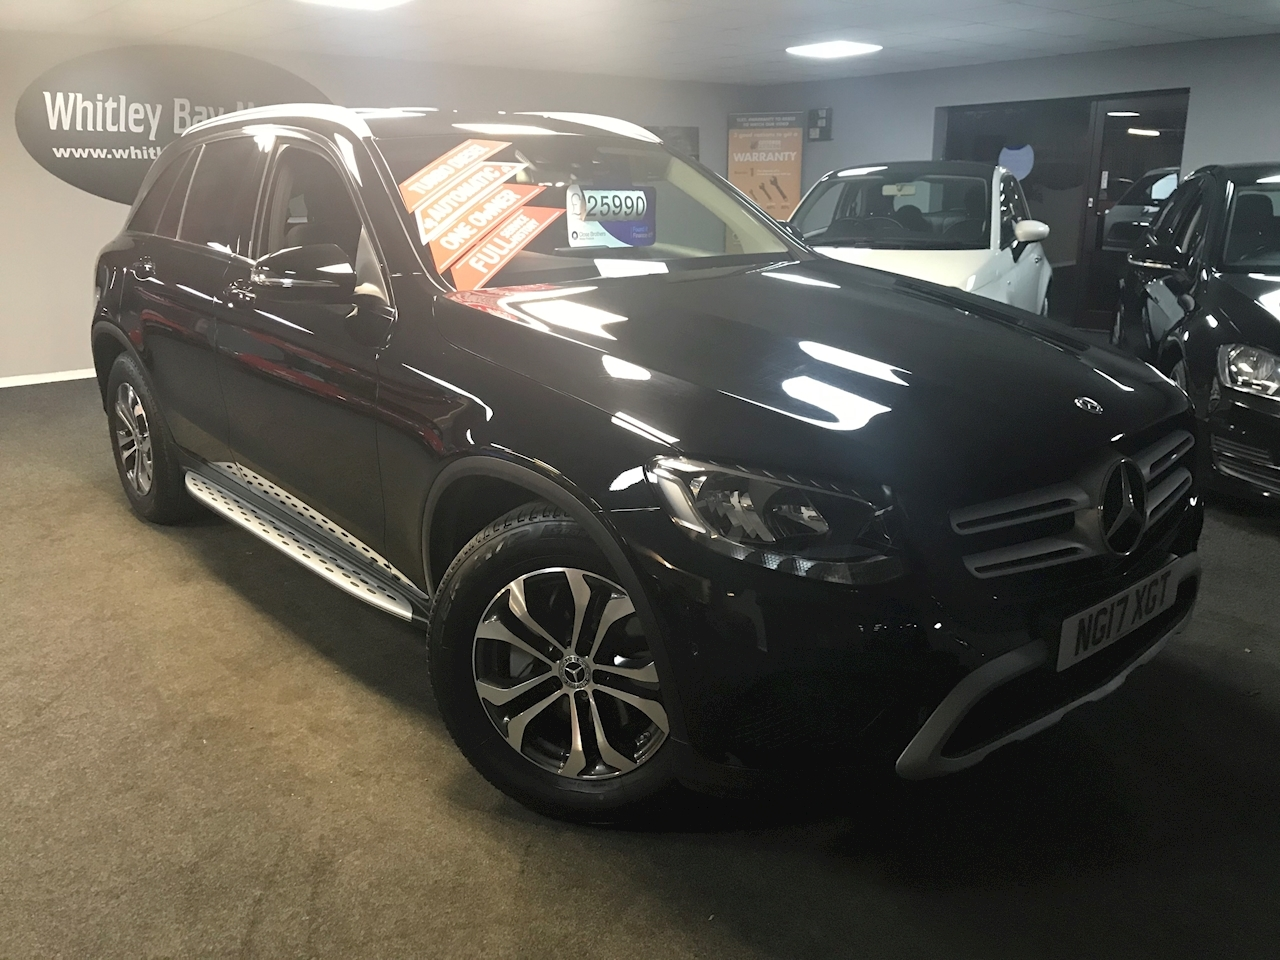 Glc-Class Glc 220 D 4Matic Se Executive Estate 2.1 Automatic Diesel